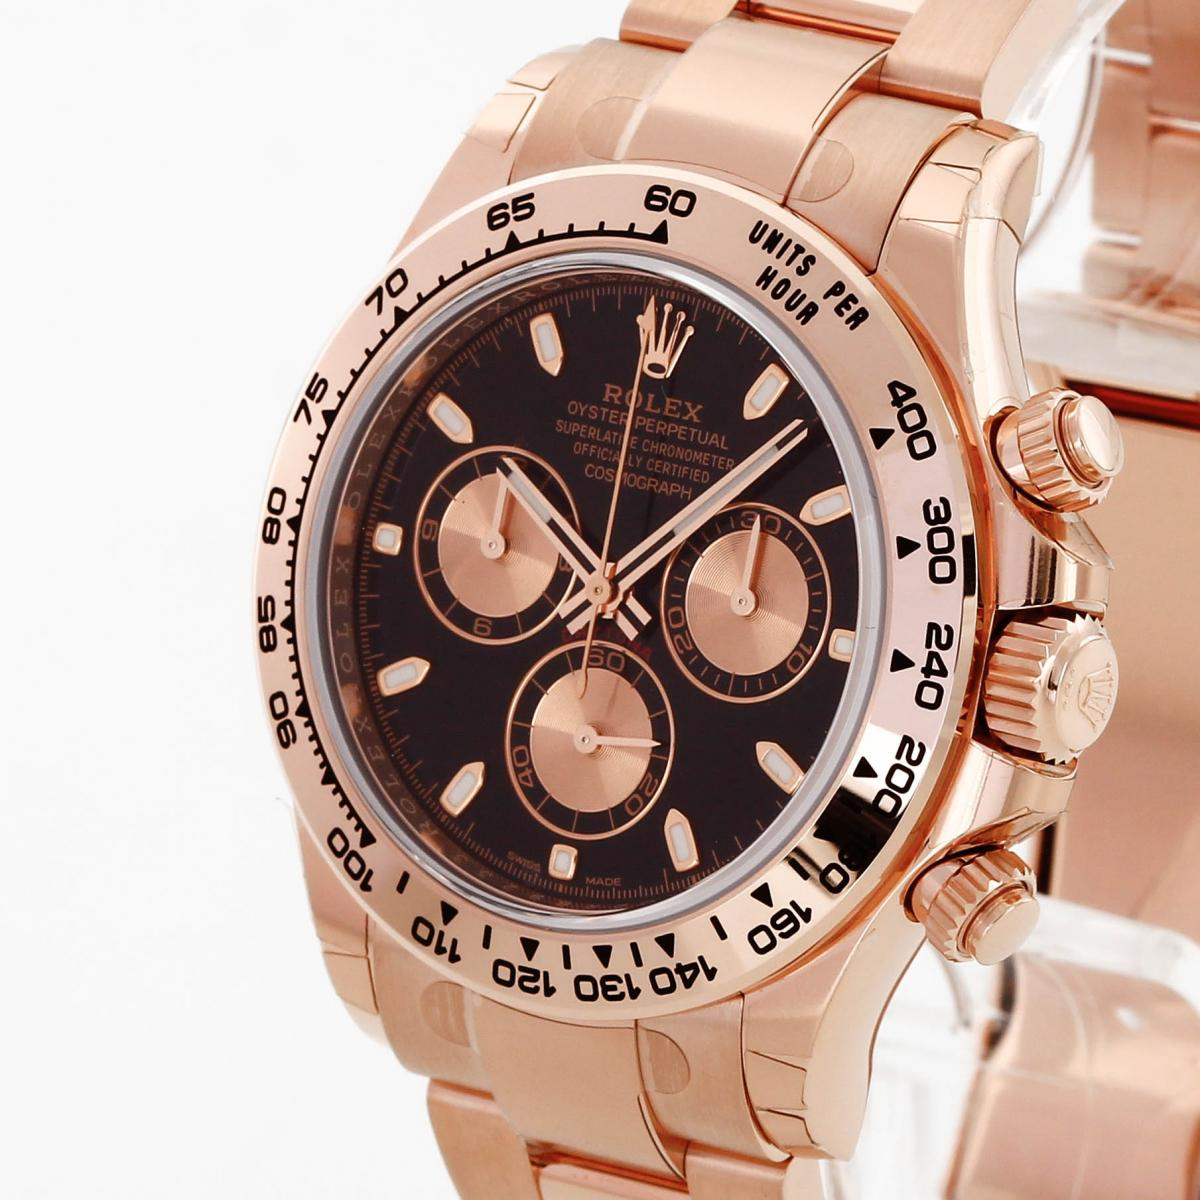 Rolex Oyster Perpetual Cosmograph Daytona Chronograph Ref. 116505